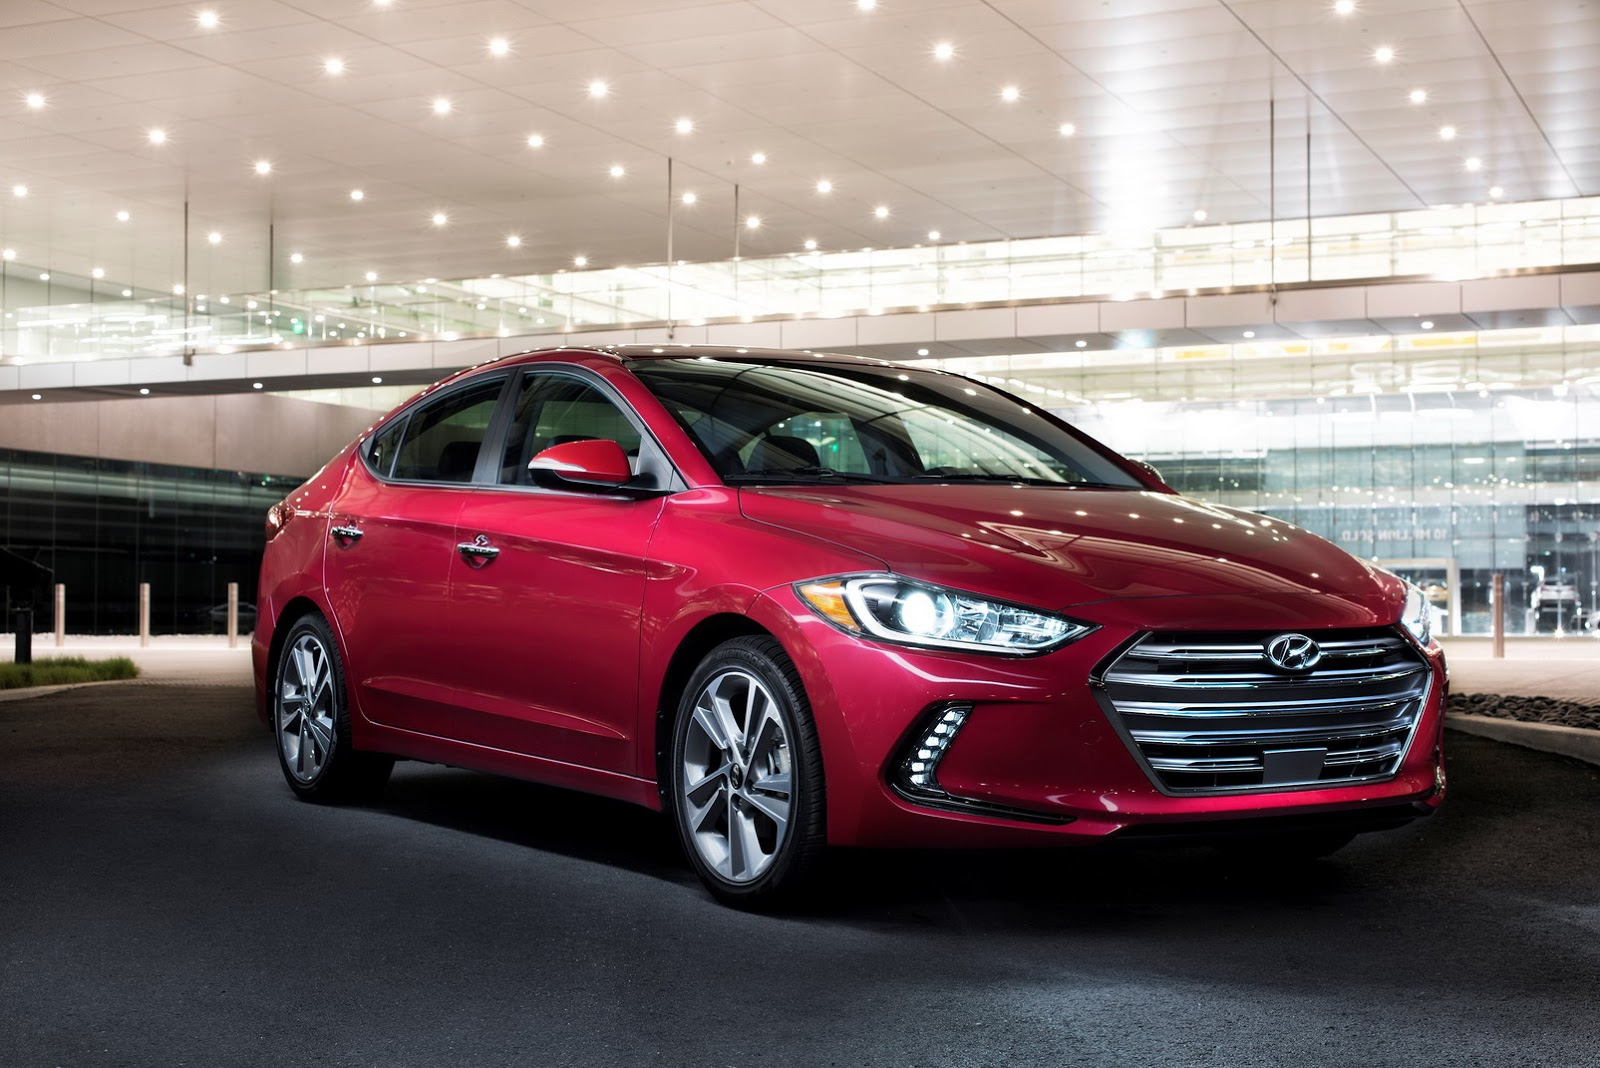 New Hyundai Elantra Photo Gallery Car Gallery